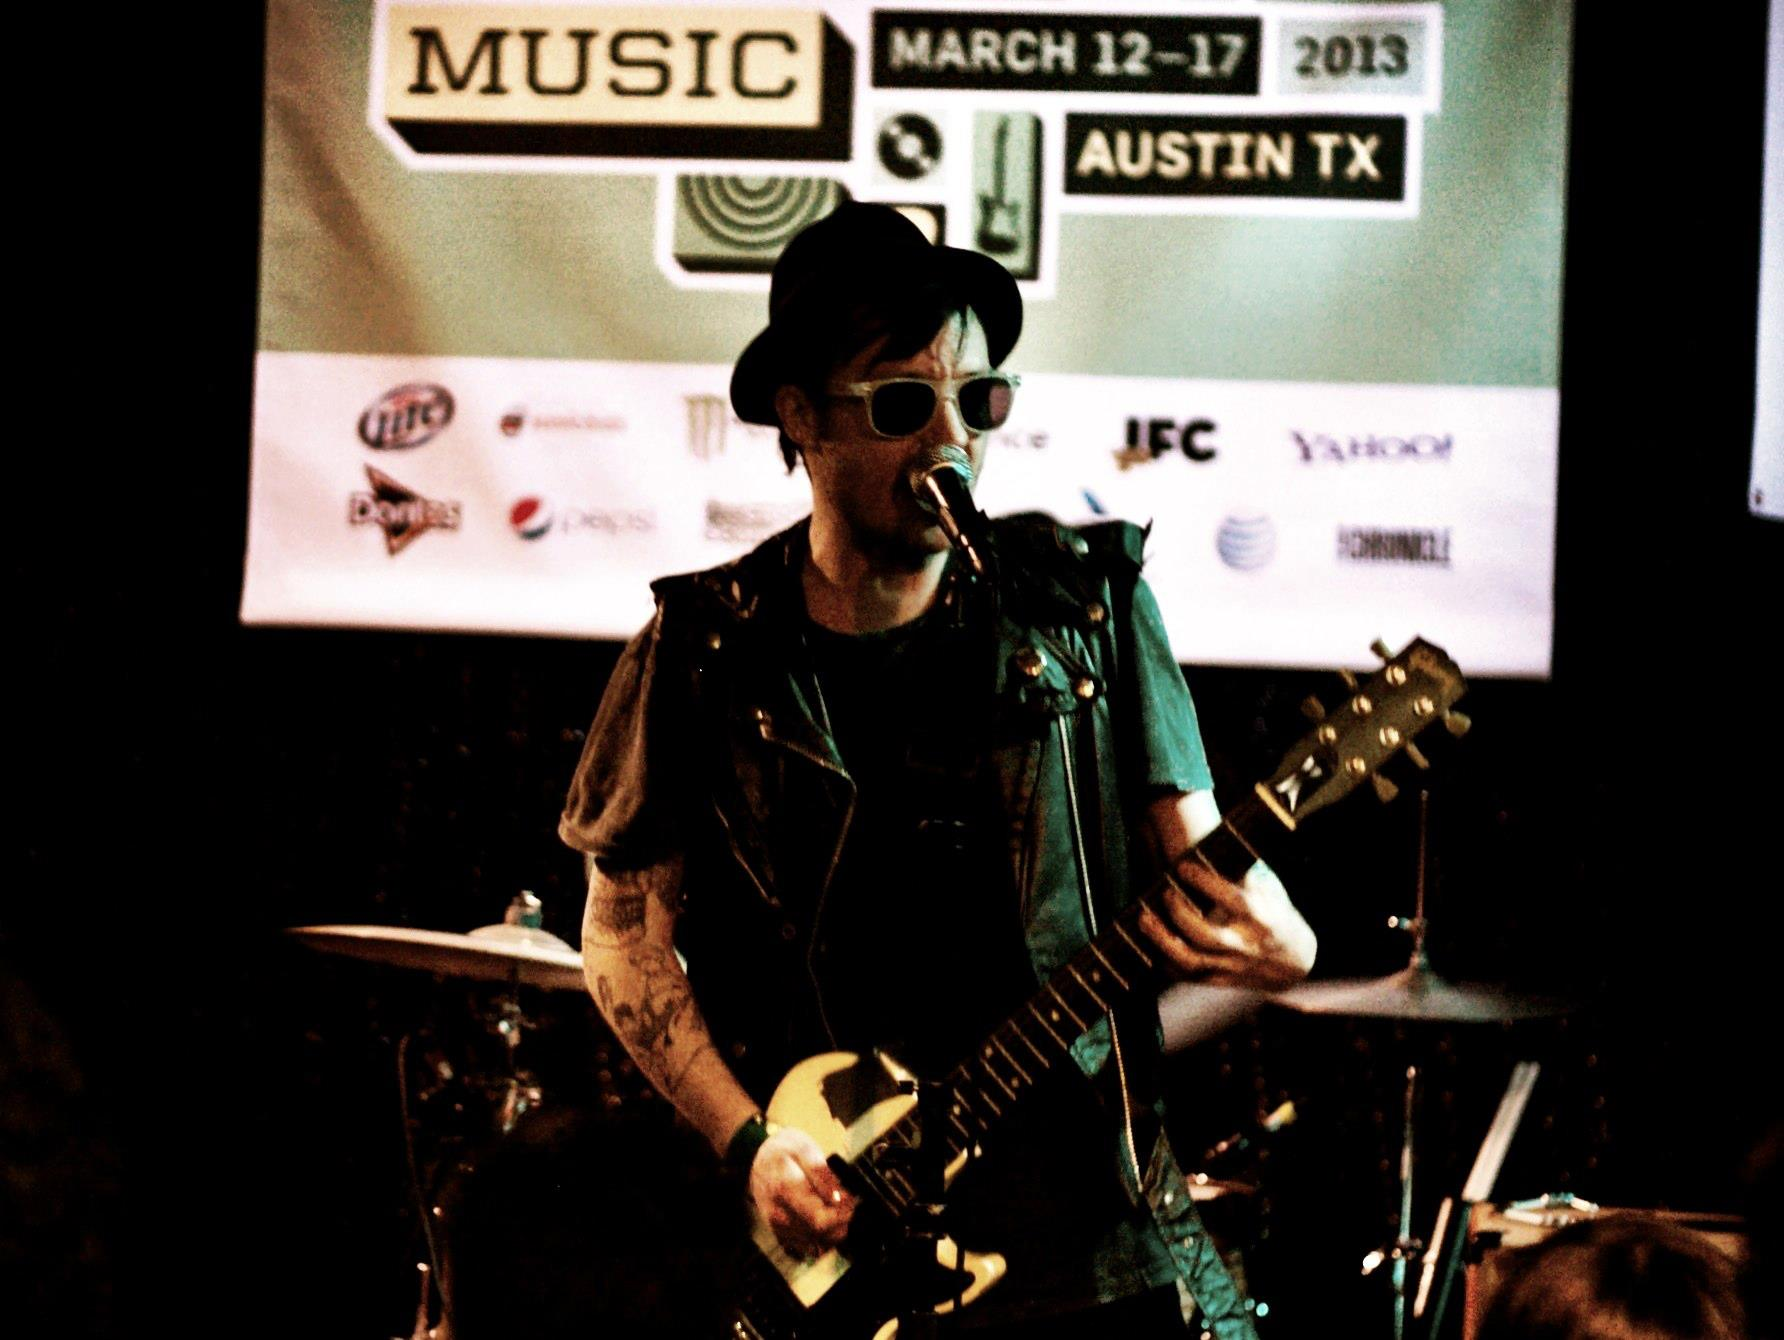 The Death set live at SXSW SXSW 2013 Day 2 (Feat. Cave Painting, Papa, Poolside, Japandroids, Iggy And The Stooges, Caveman, Pickwick, The Death Set and Divine Fits)